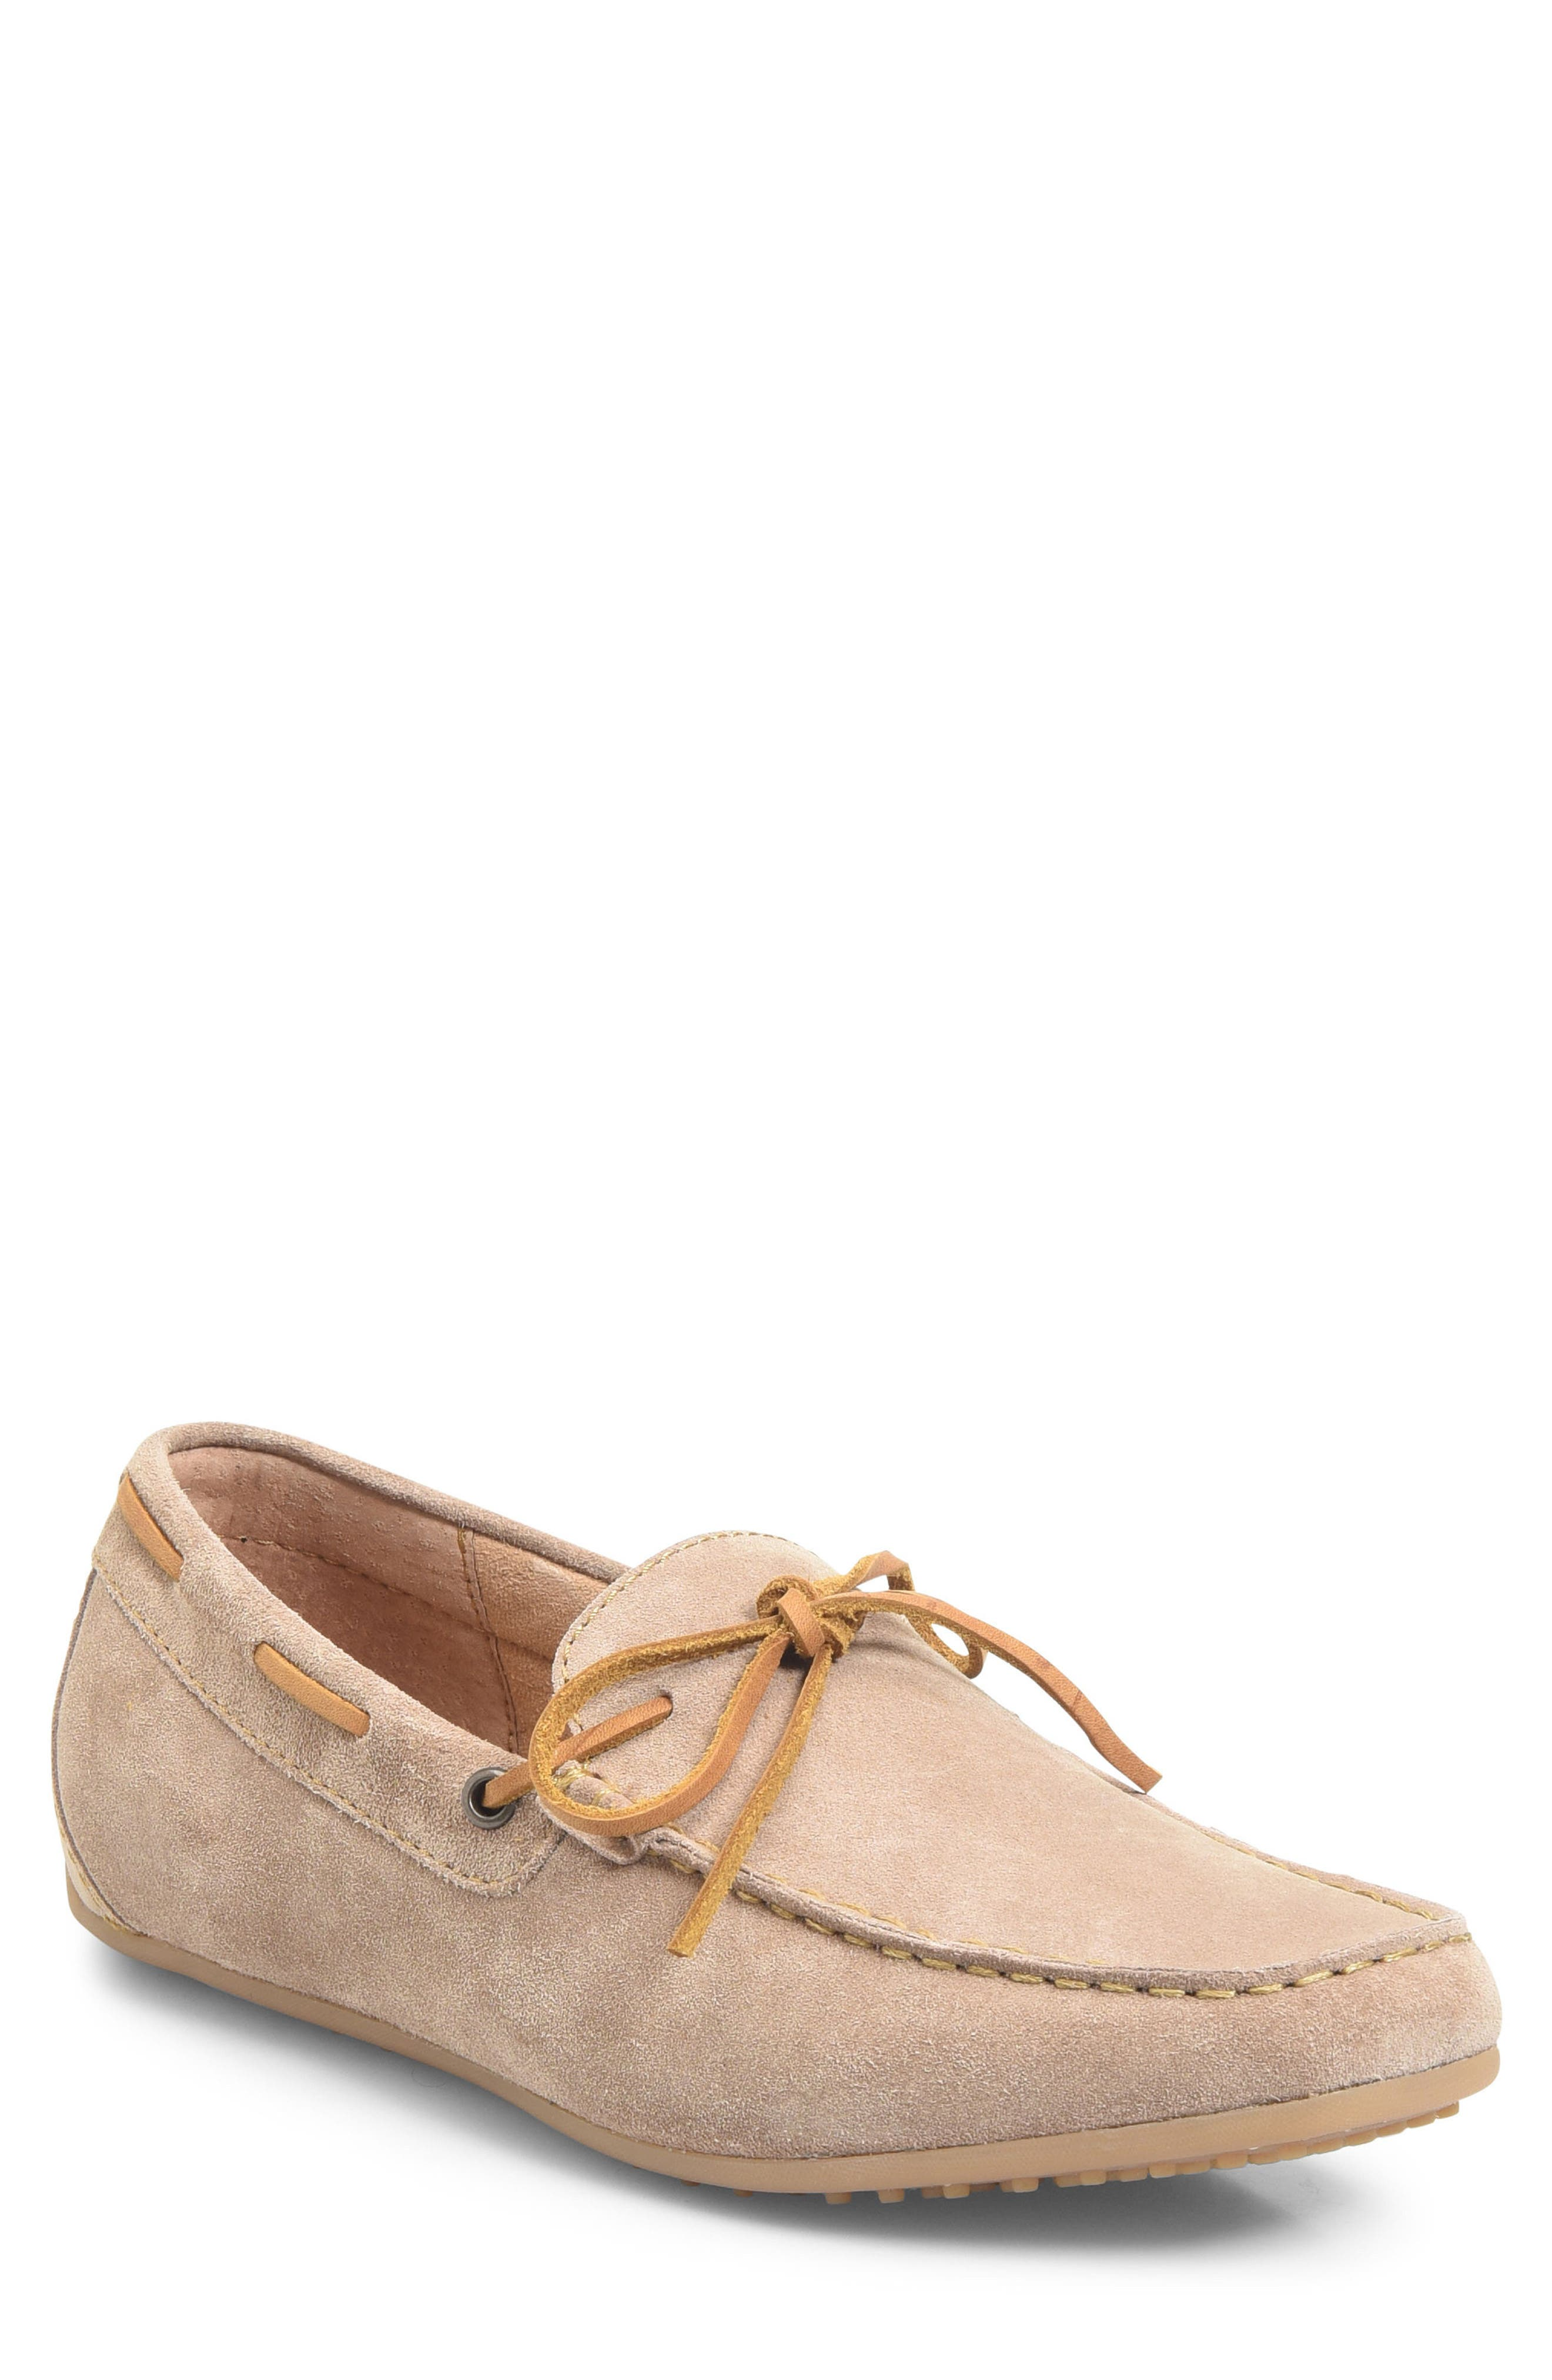 Virgo Driving Shoe,                             Main thumbnail 1, color,                             Taupe Suede